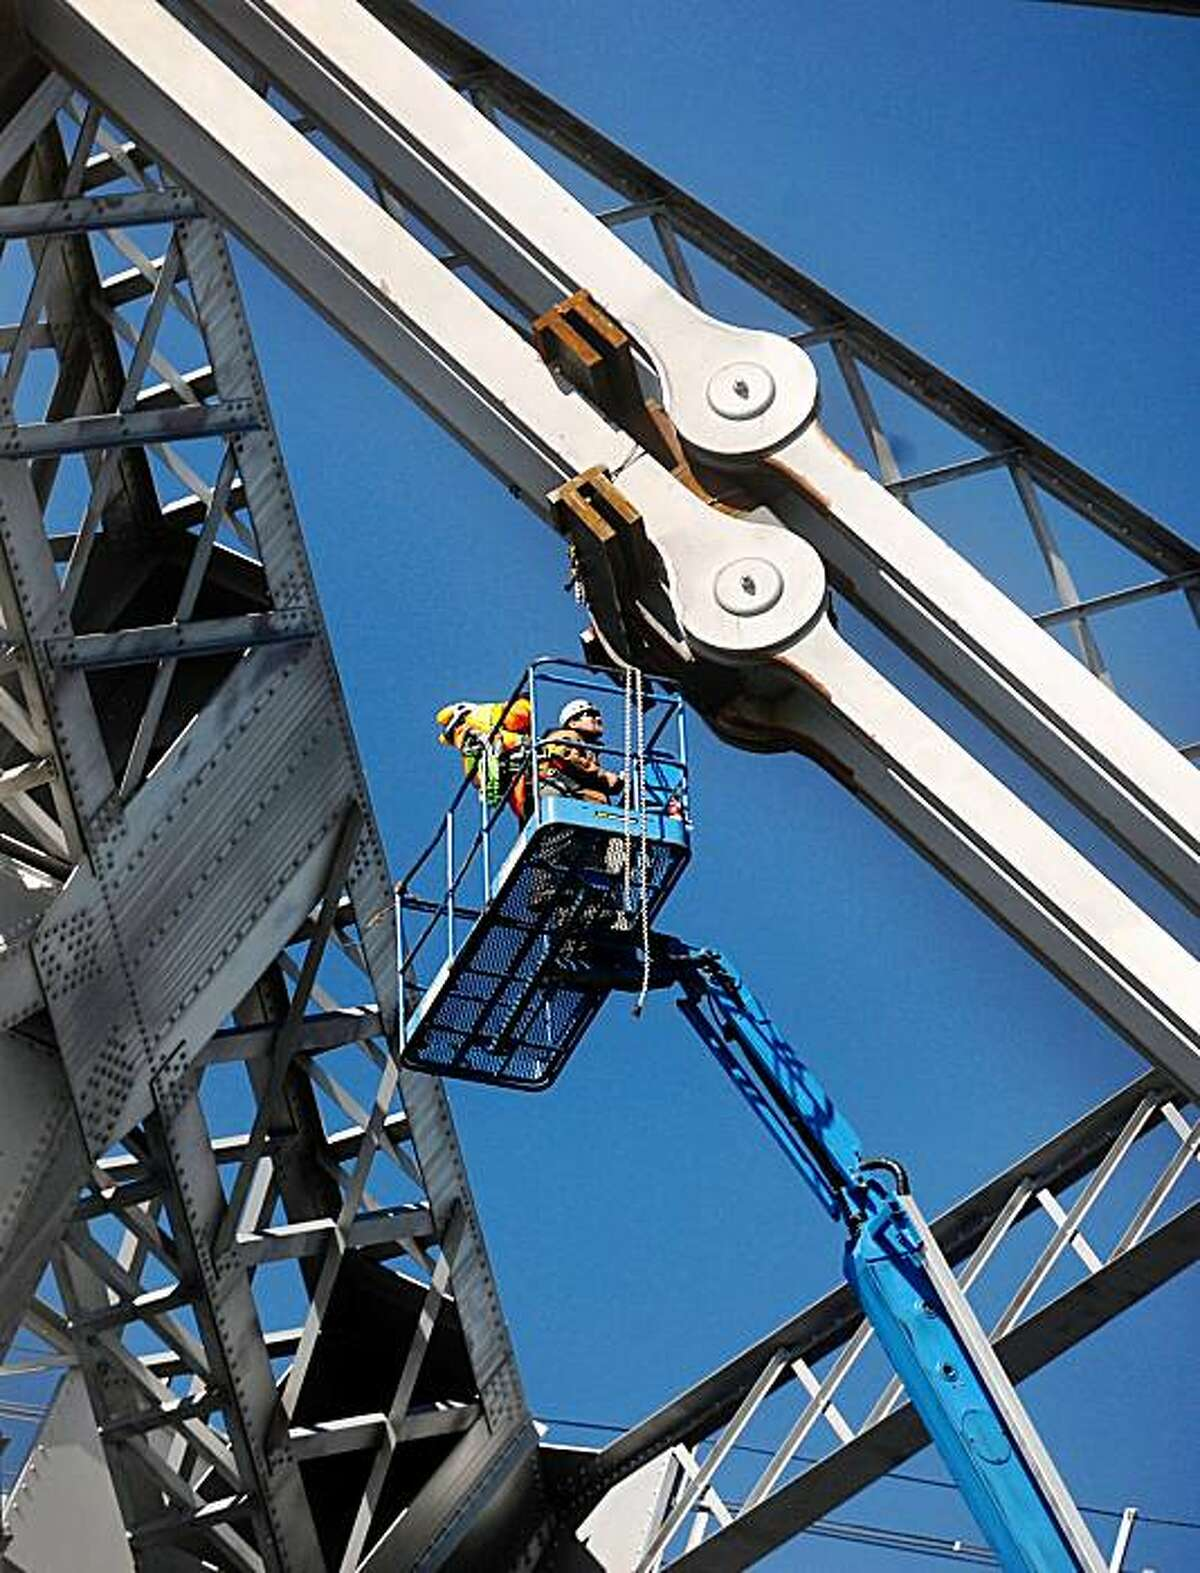 Workers inspect an eyebar support on the Bay Bridge on Wednesday. The bridge remains closed in both directions following a support failure Tuesday evening.